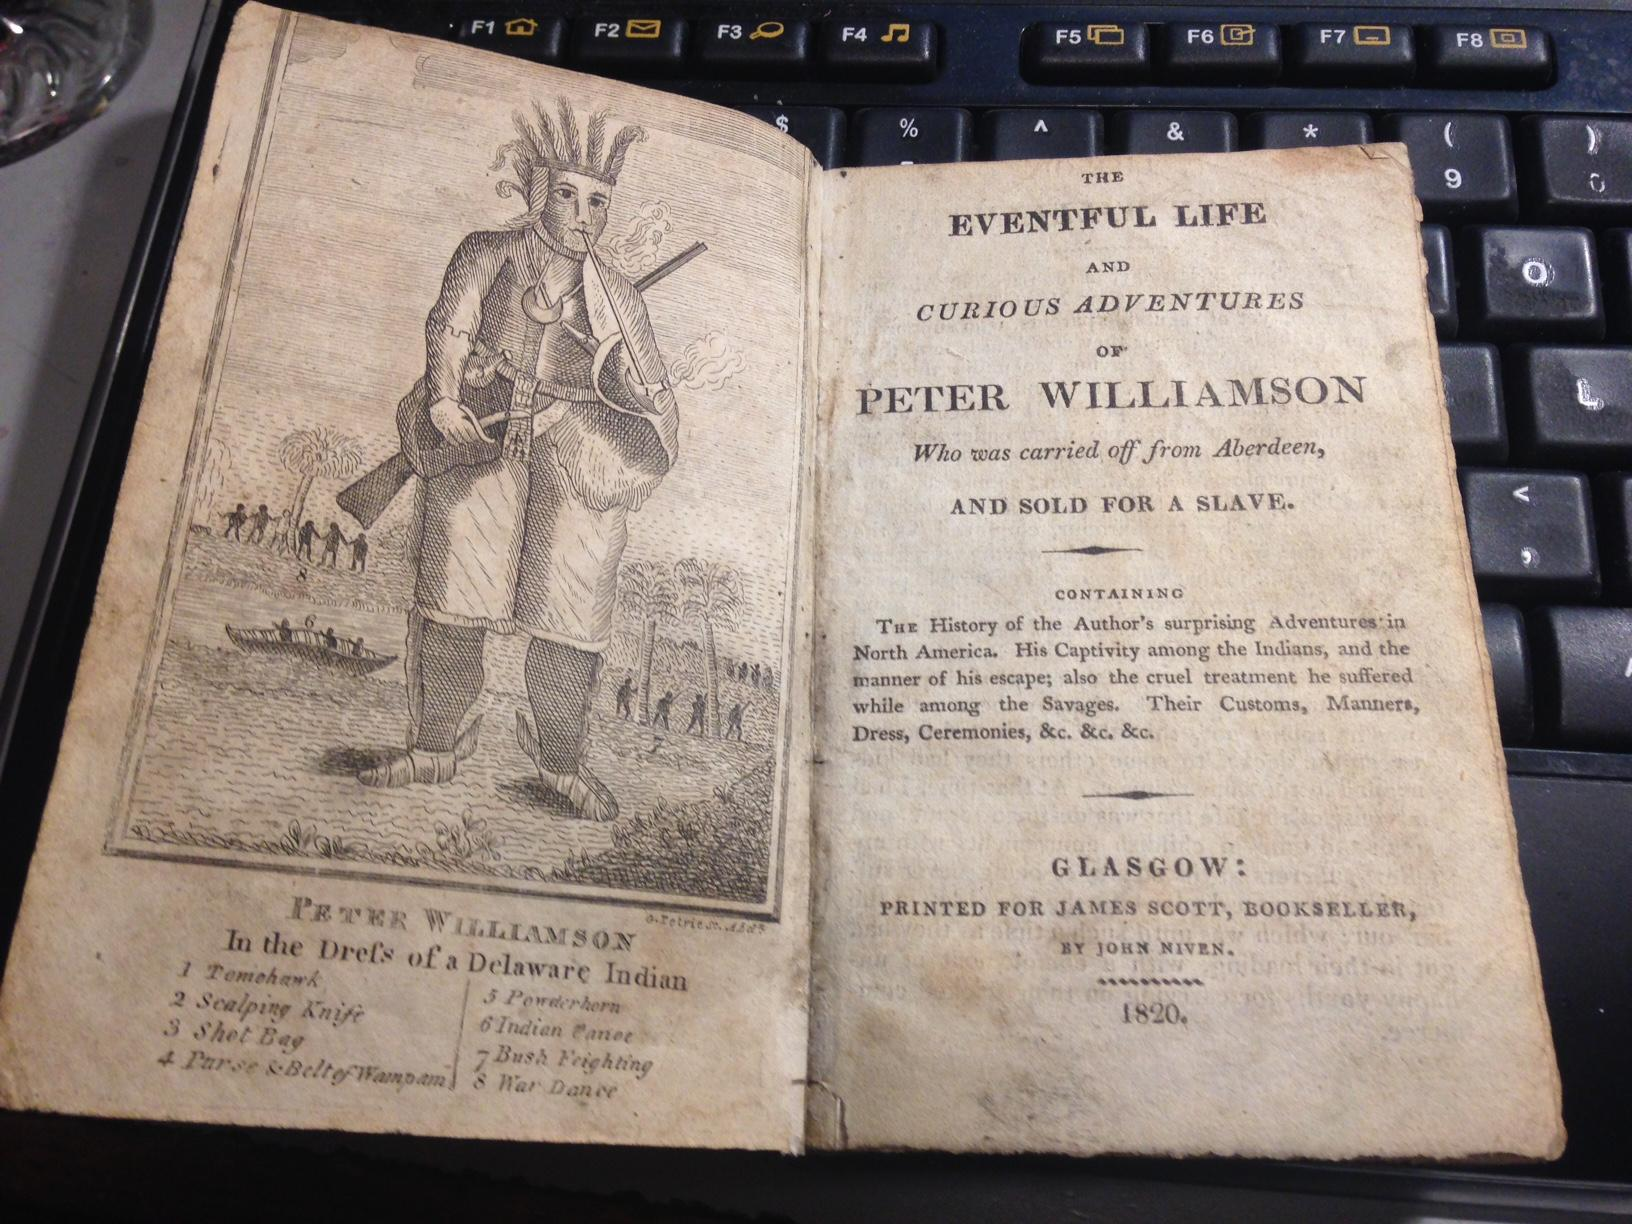 French and Indian Cruelty: The Life and Curious Adventures of Peter Williamson